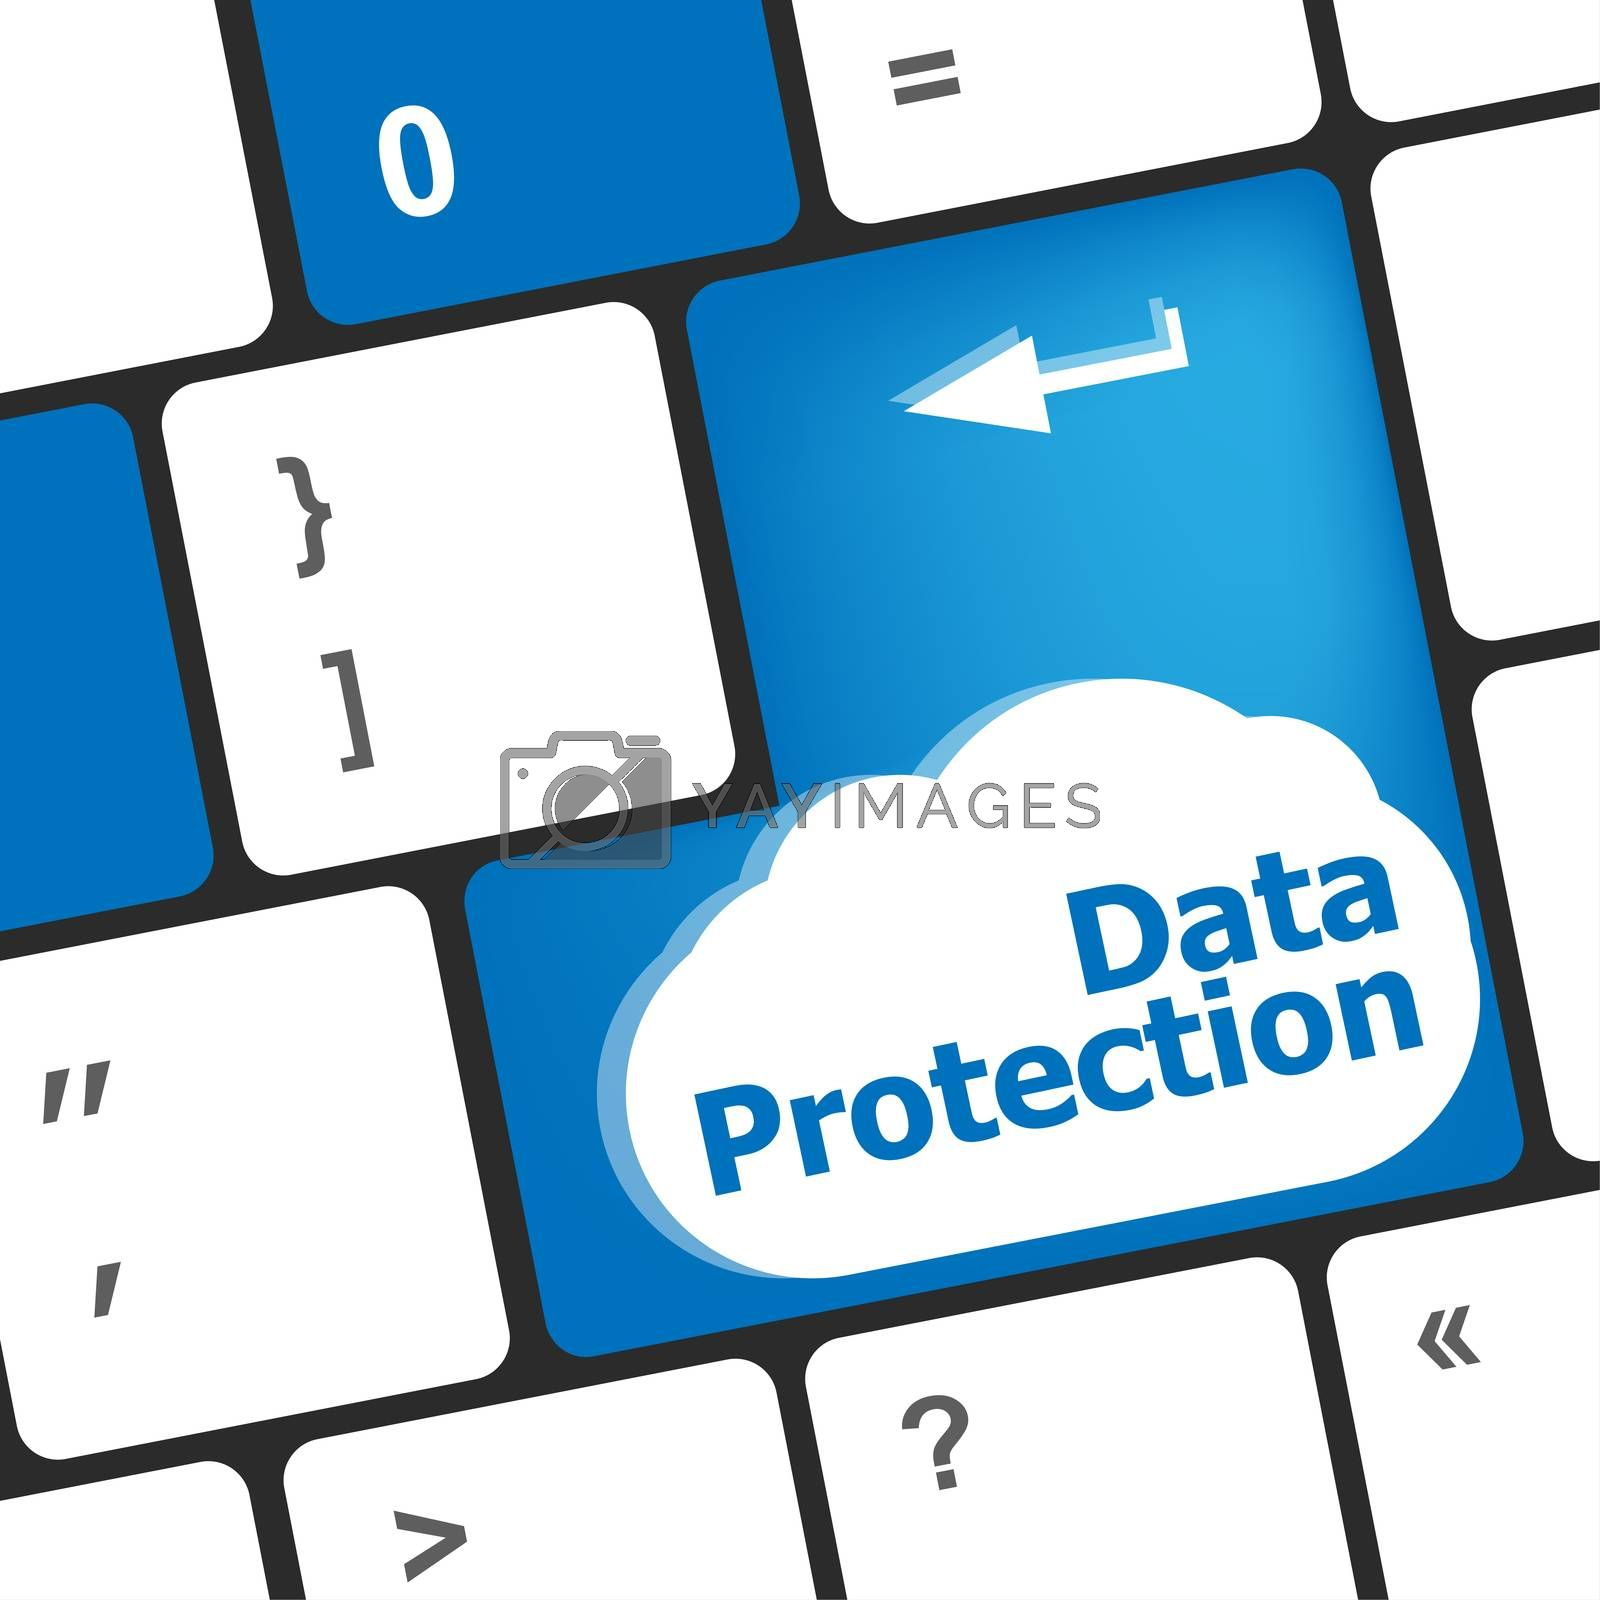 data protection button on the keyboard keys